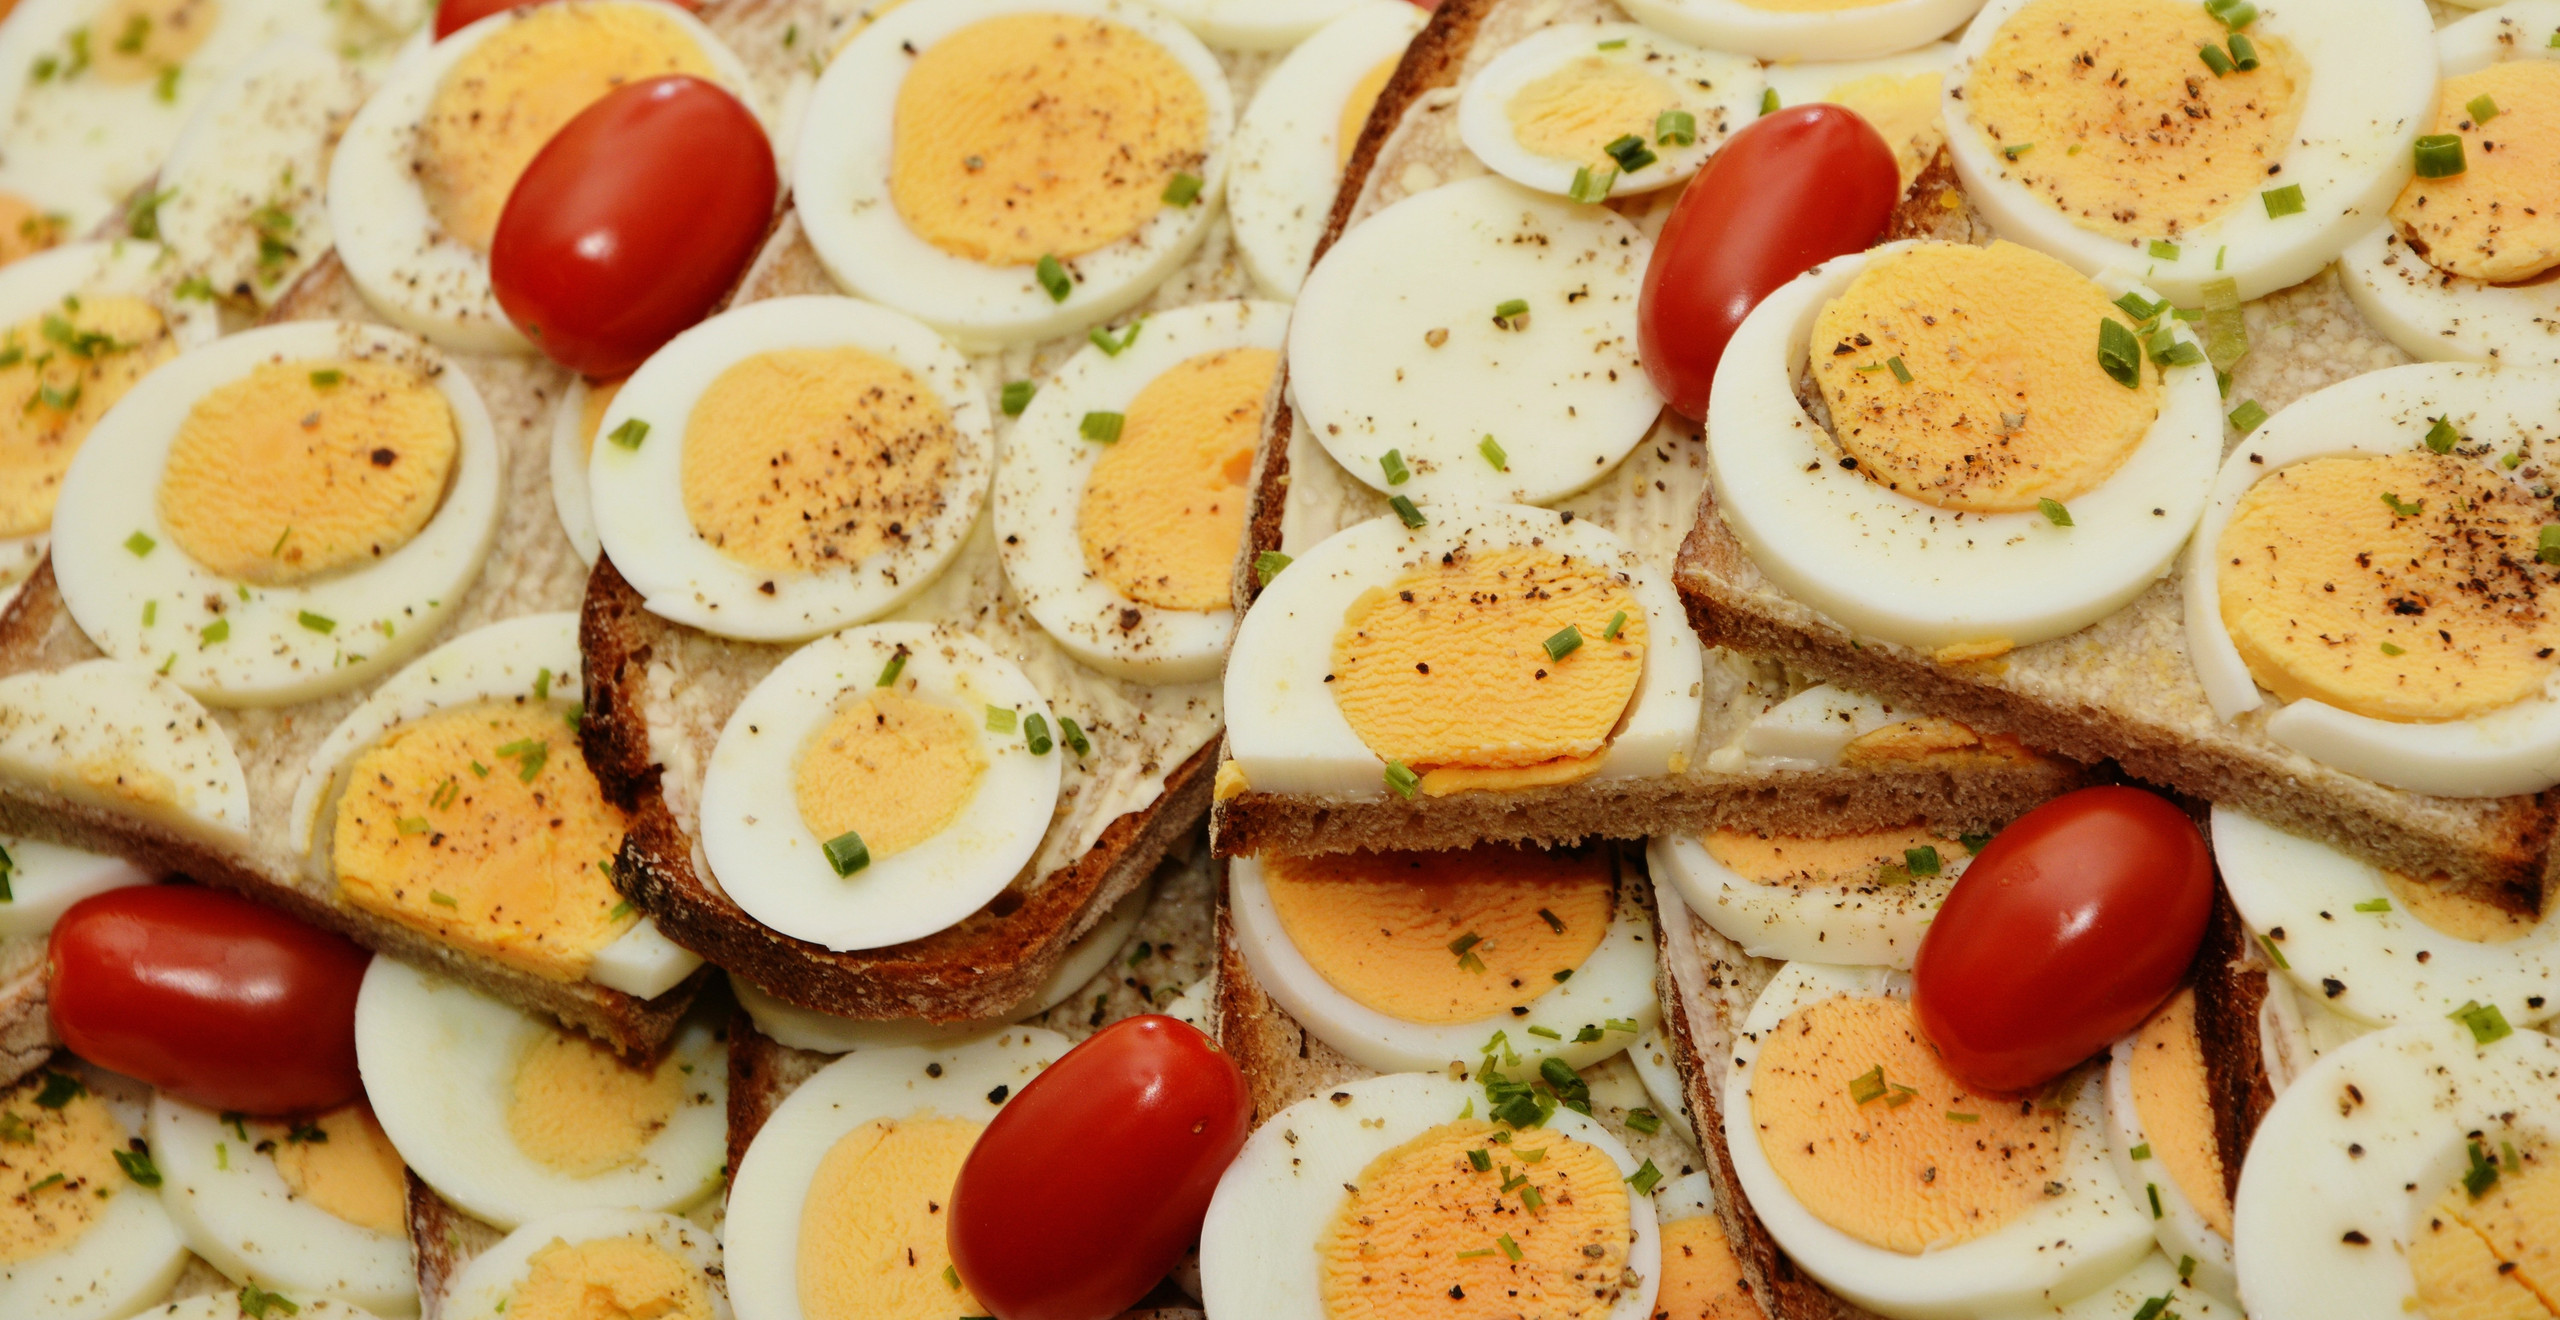 Egg Yolk is the rich source of vitamin D